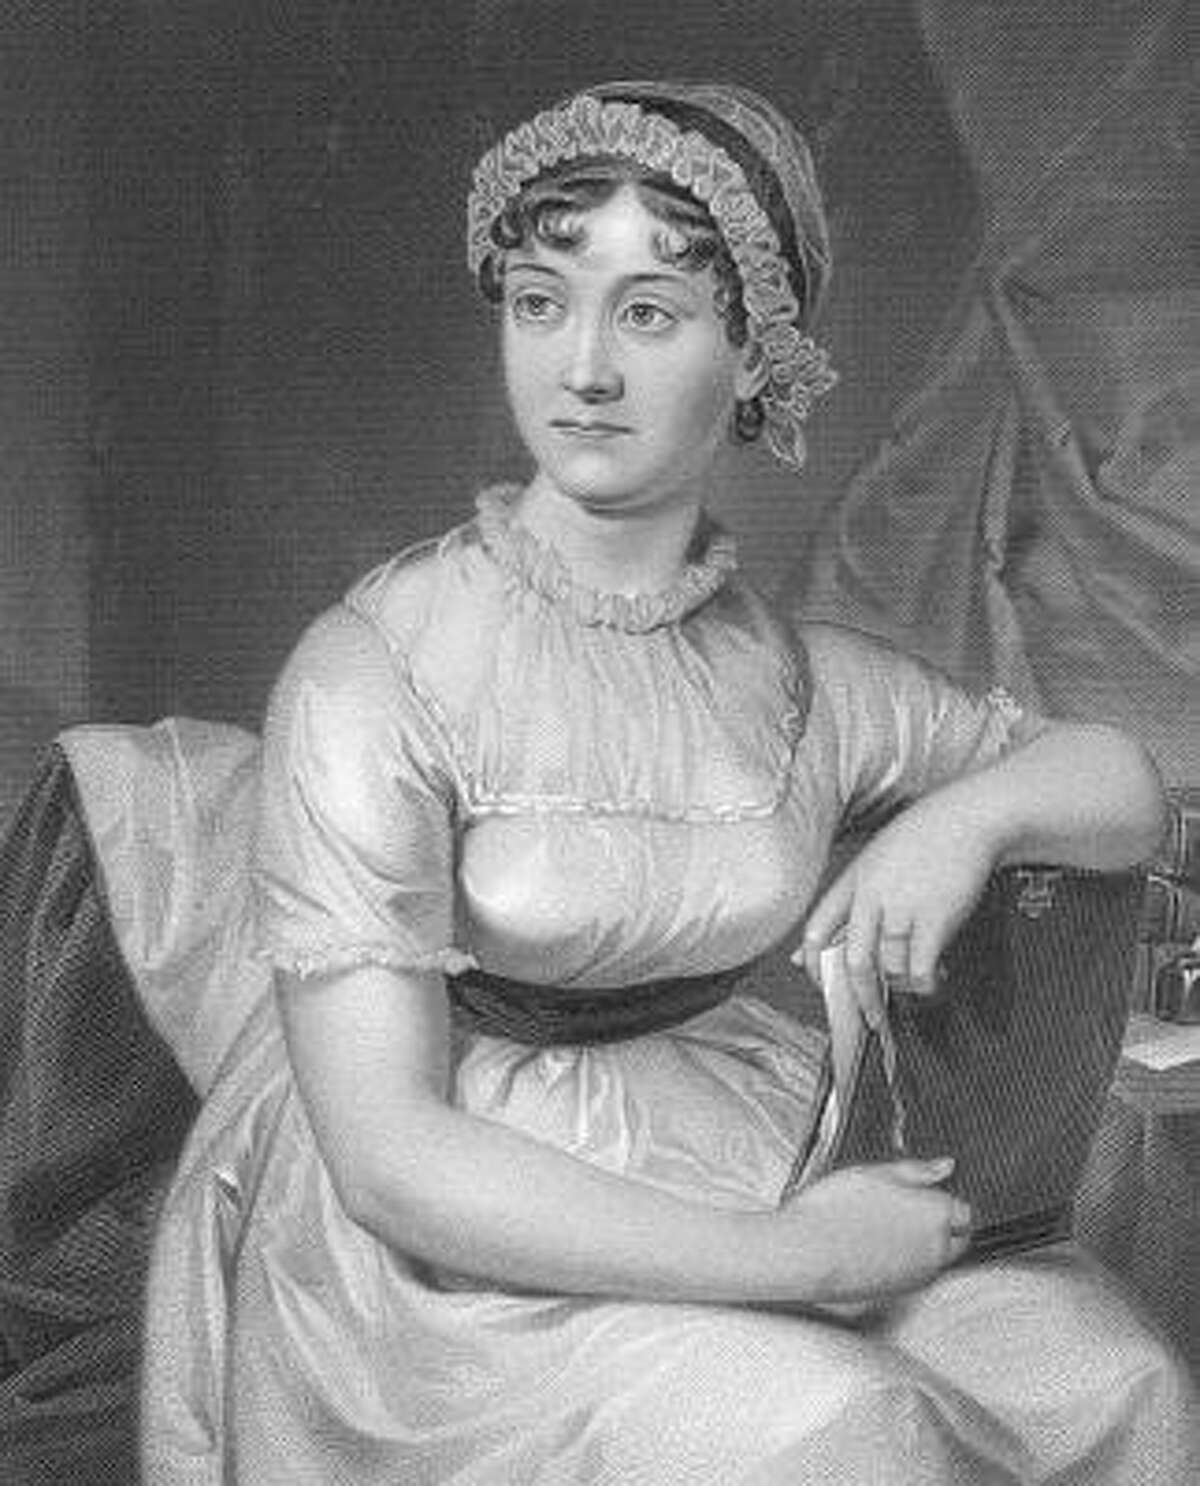 Her story Not much is known about Austen's life. Her sister, Cassandra, burned much of her correspondence. Only 160 of about 3,000 letters remain. She published four novels in her short lifetime and two posthumously. She died at 41.